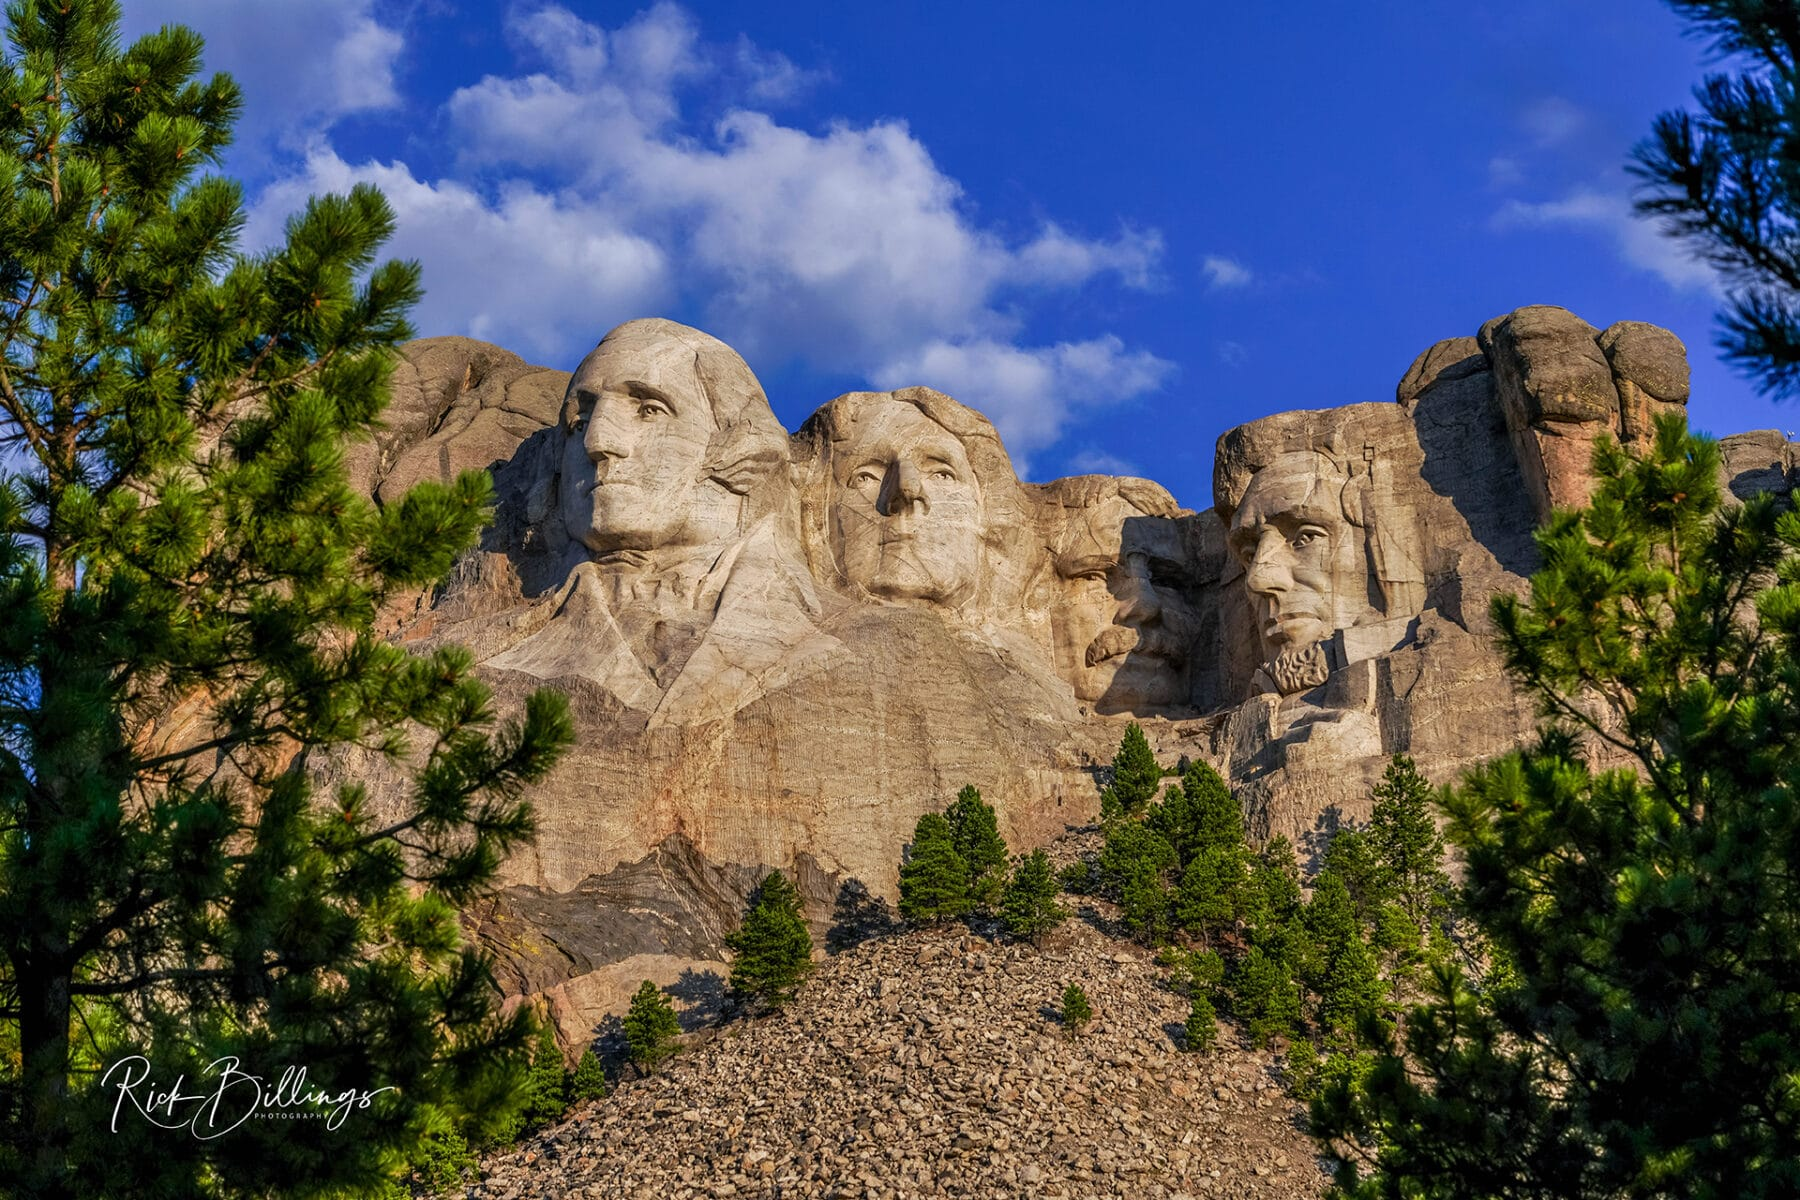 No 1013 20190815 Mount Rushmore National Memorial